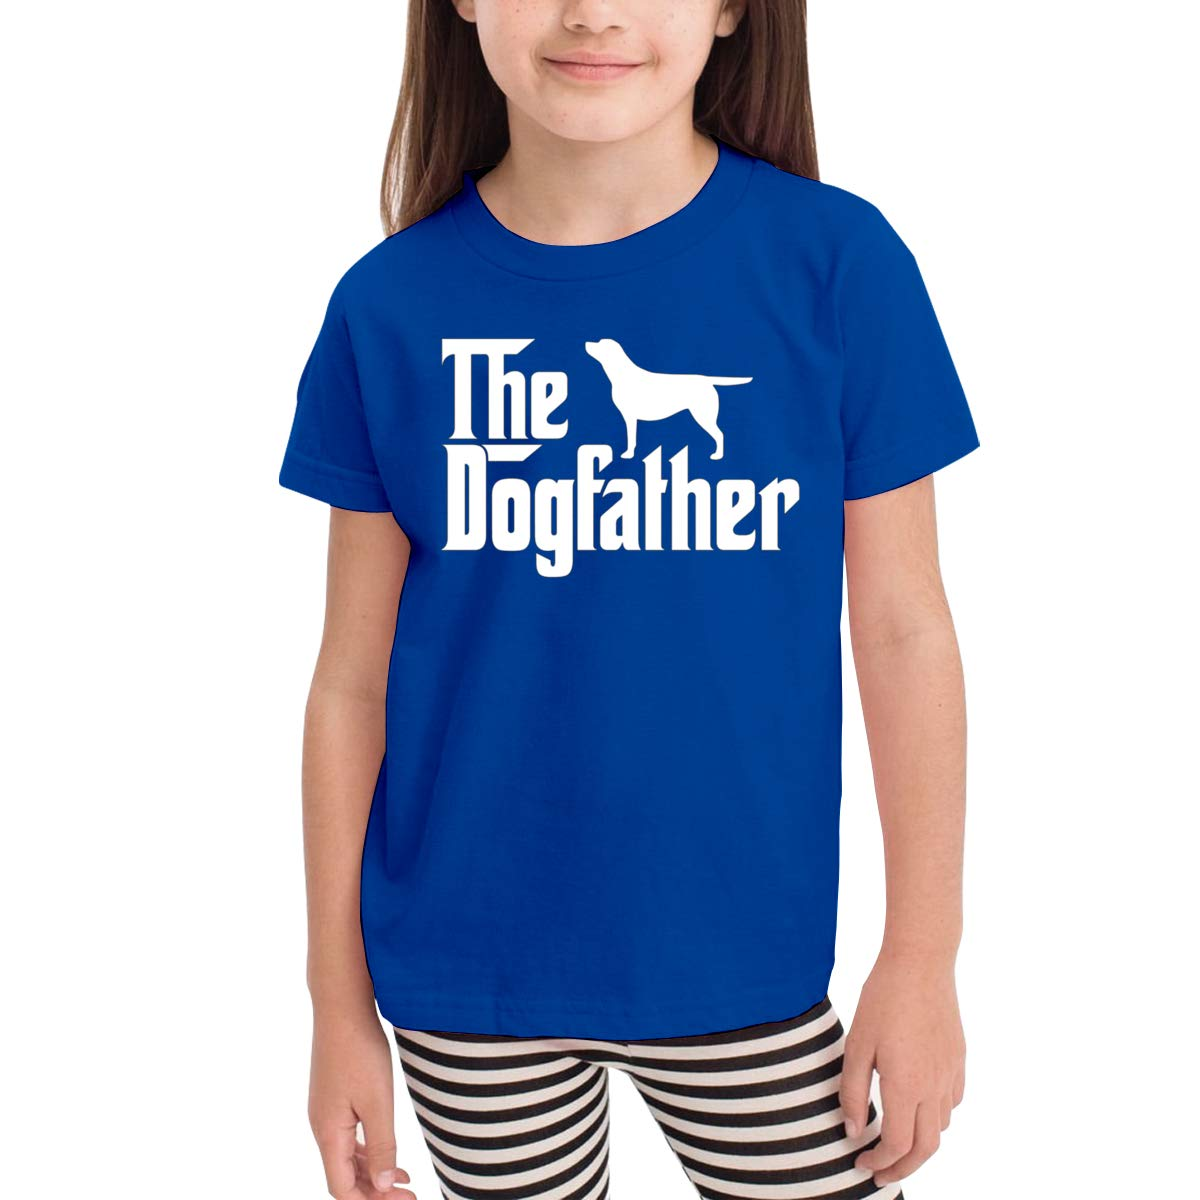 Kids T-Shirt Tops Black The Dogfather Unisex Youths Short Sleeve T-Shirt